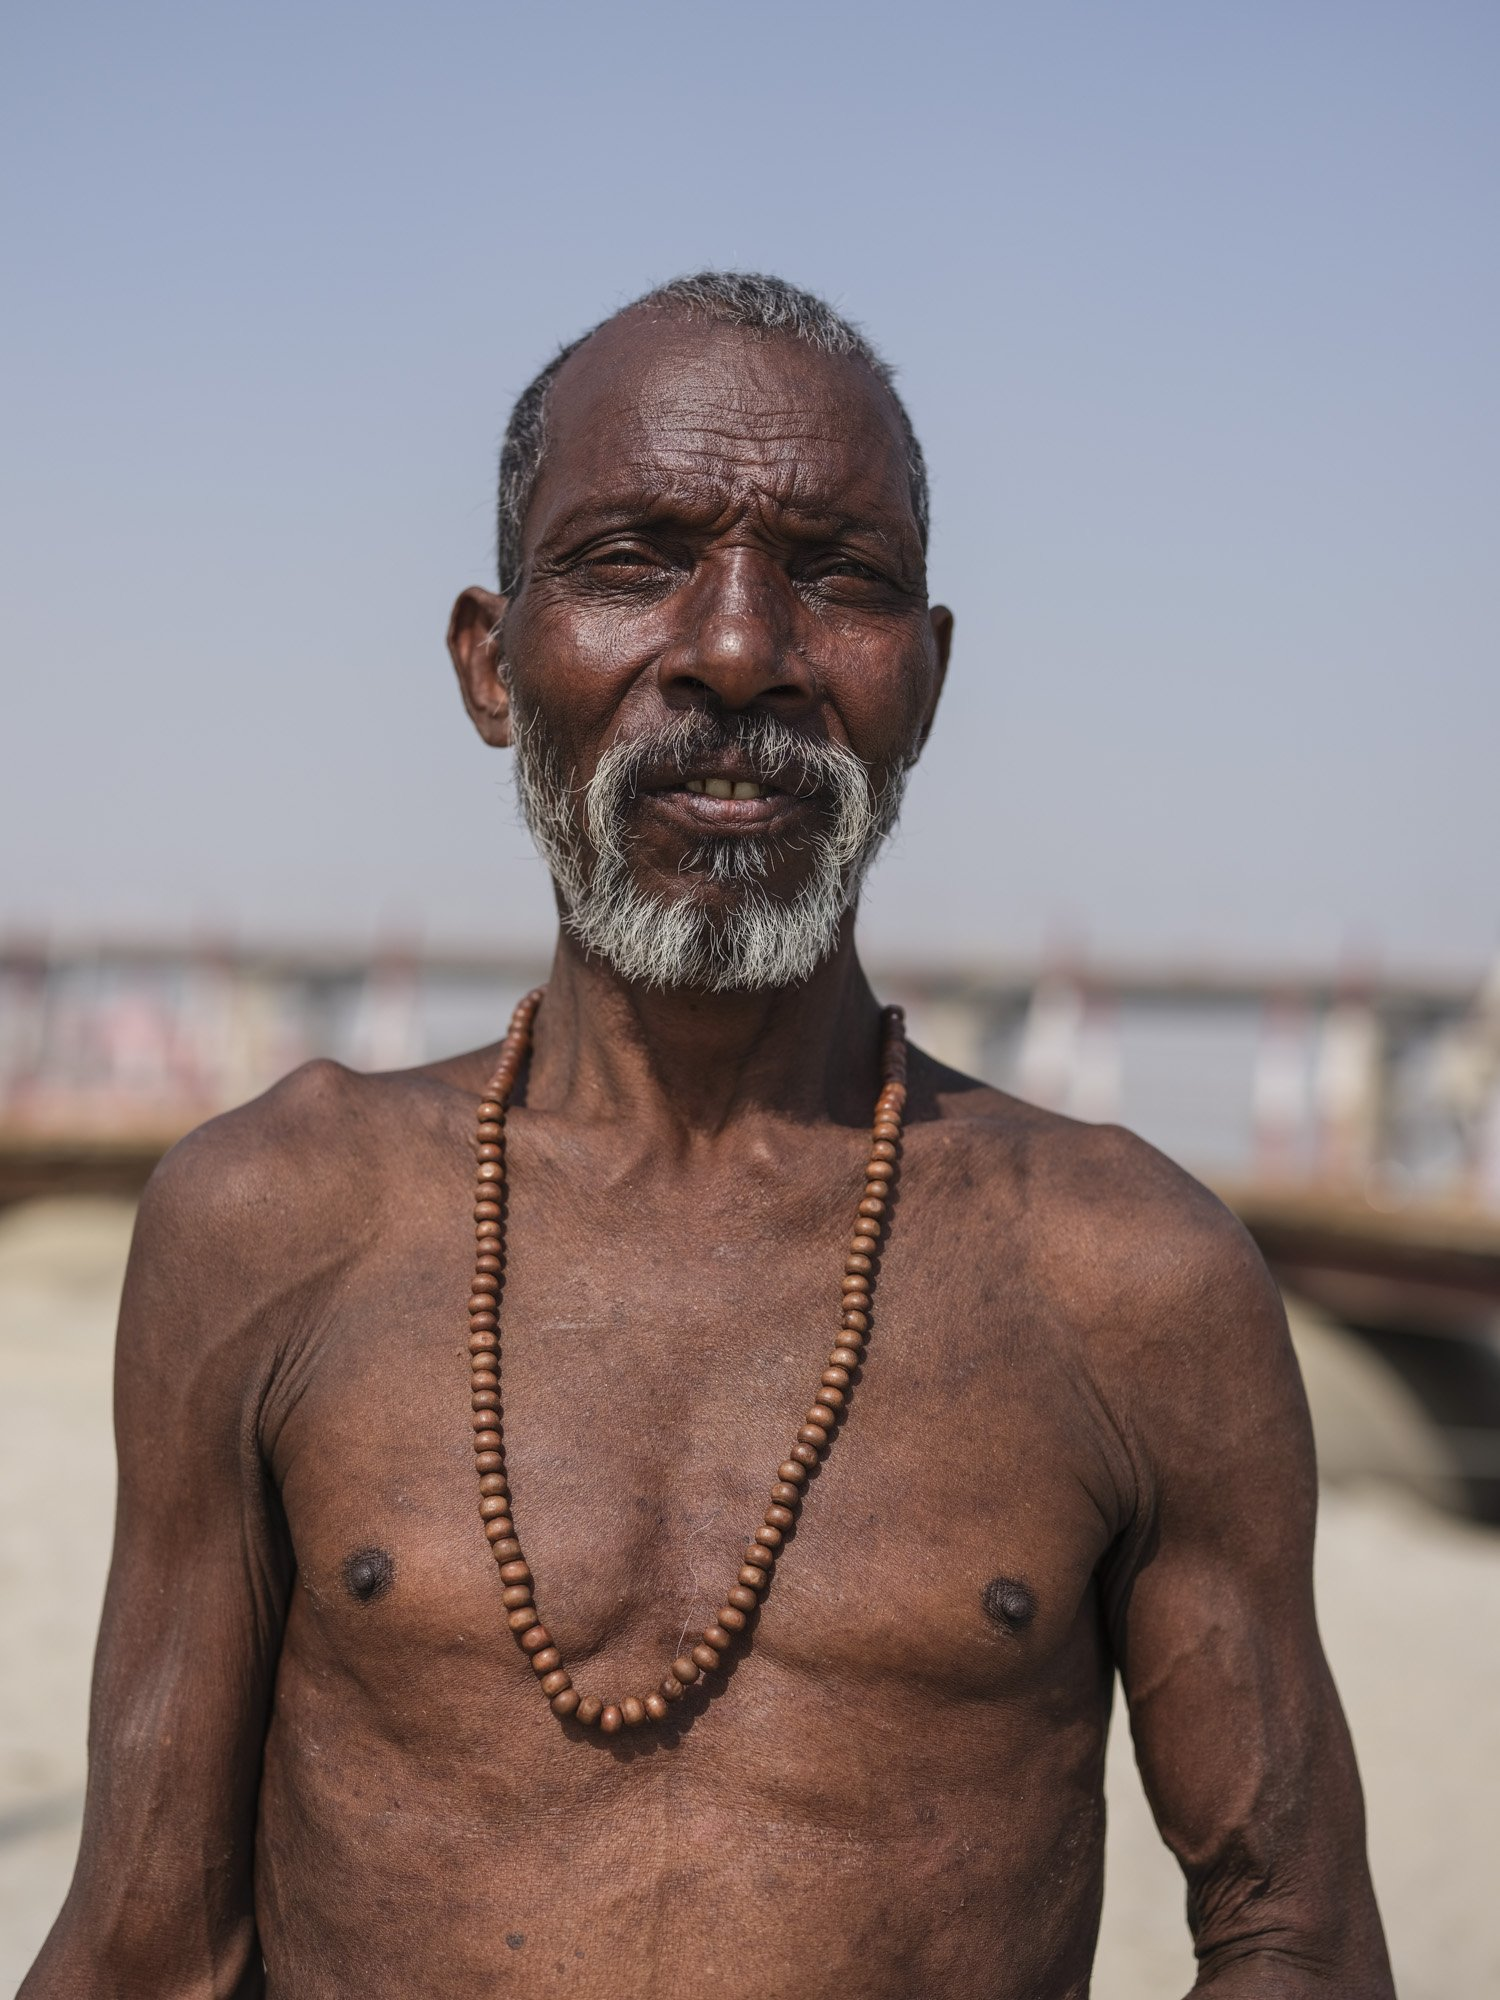 fit man pilgrims Kumbh mela 2019 India Allahabad Prayagraj Ardh hindu religious Festival event rivers photographer jose jeuland photography